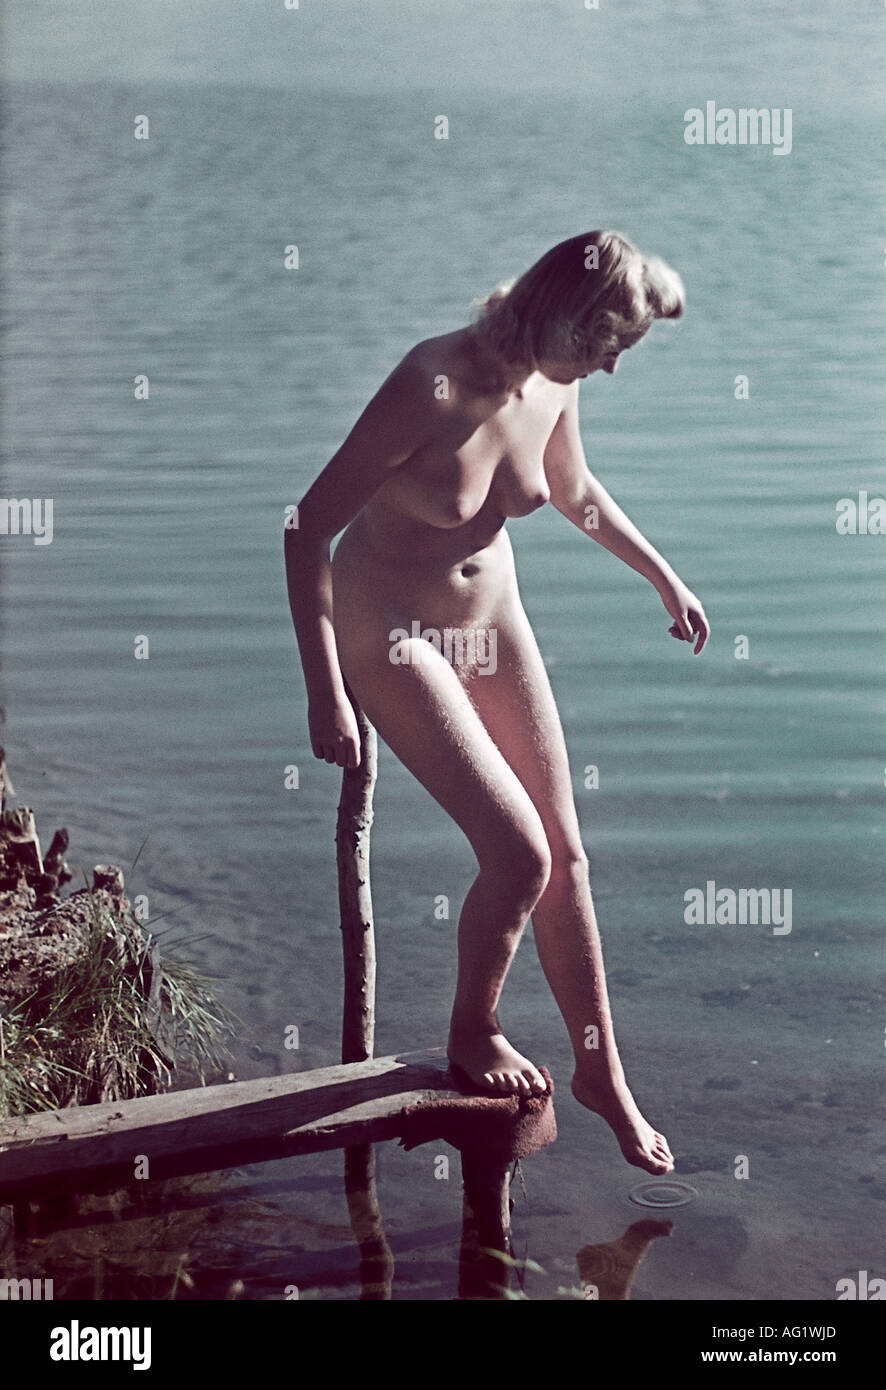 German woman nude People Nude Naked Woman At A Lake Germany 1940s 40s Eroticism Stock Photo Alamy